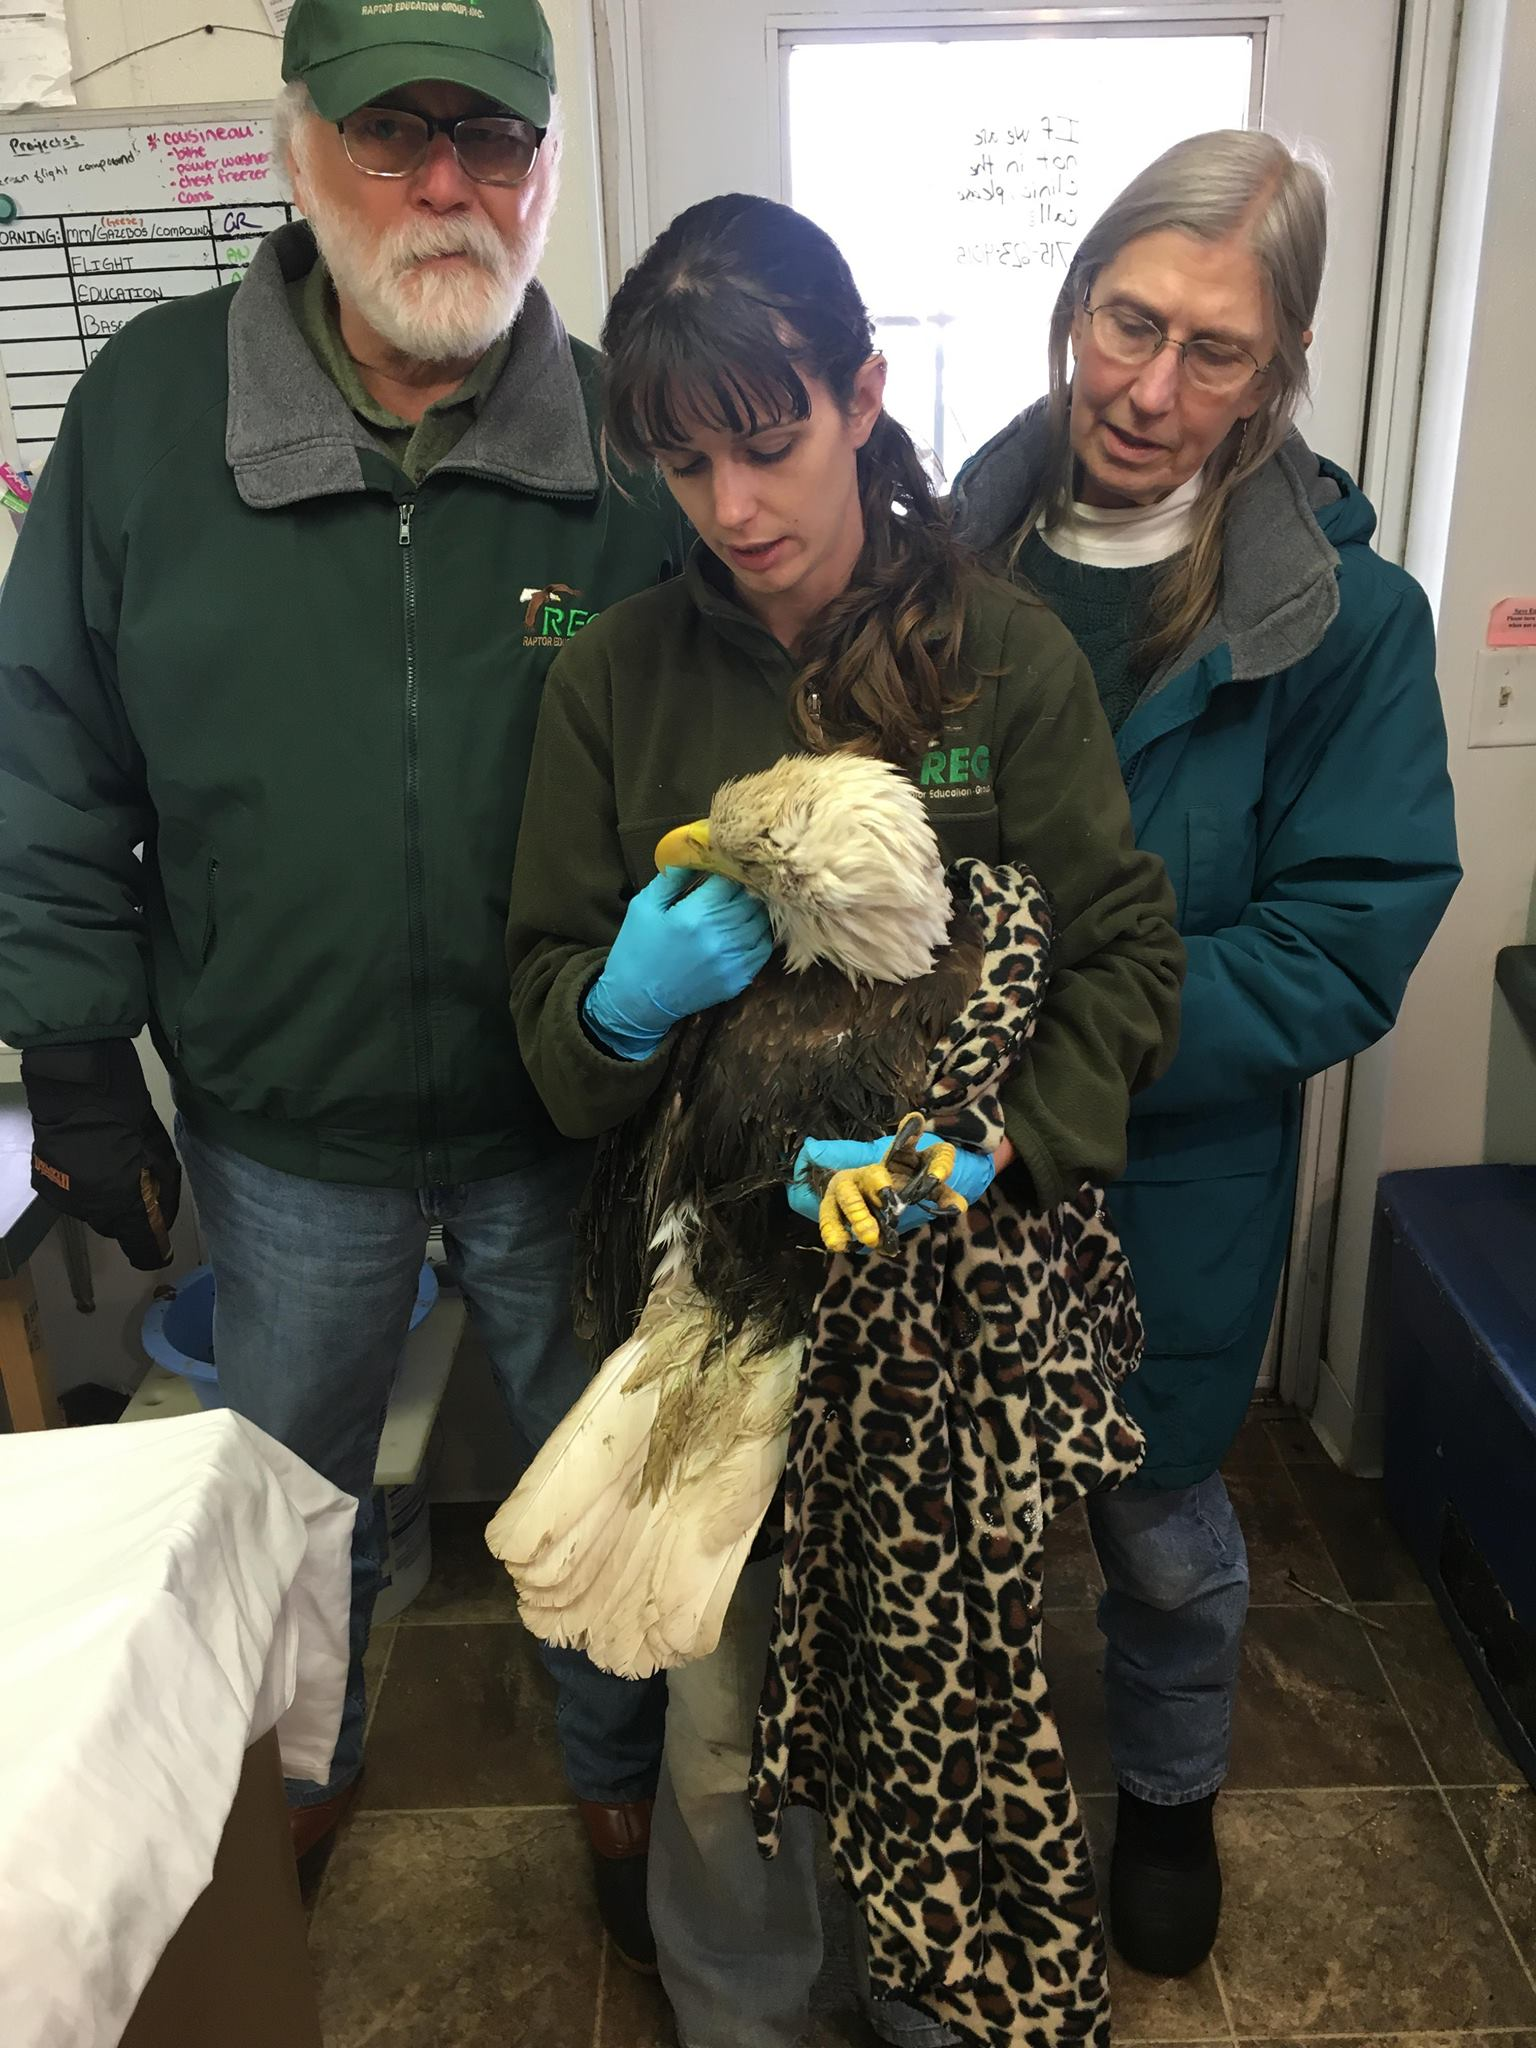 Thanks to Steve Fisher and Evie Fisher for transporting this critically ill bald eagle from Hayward.